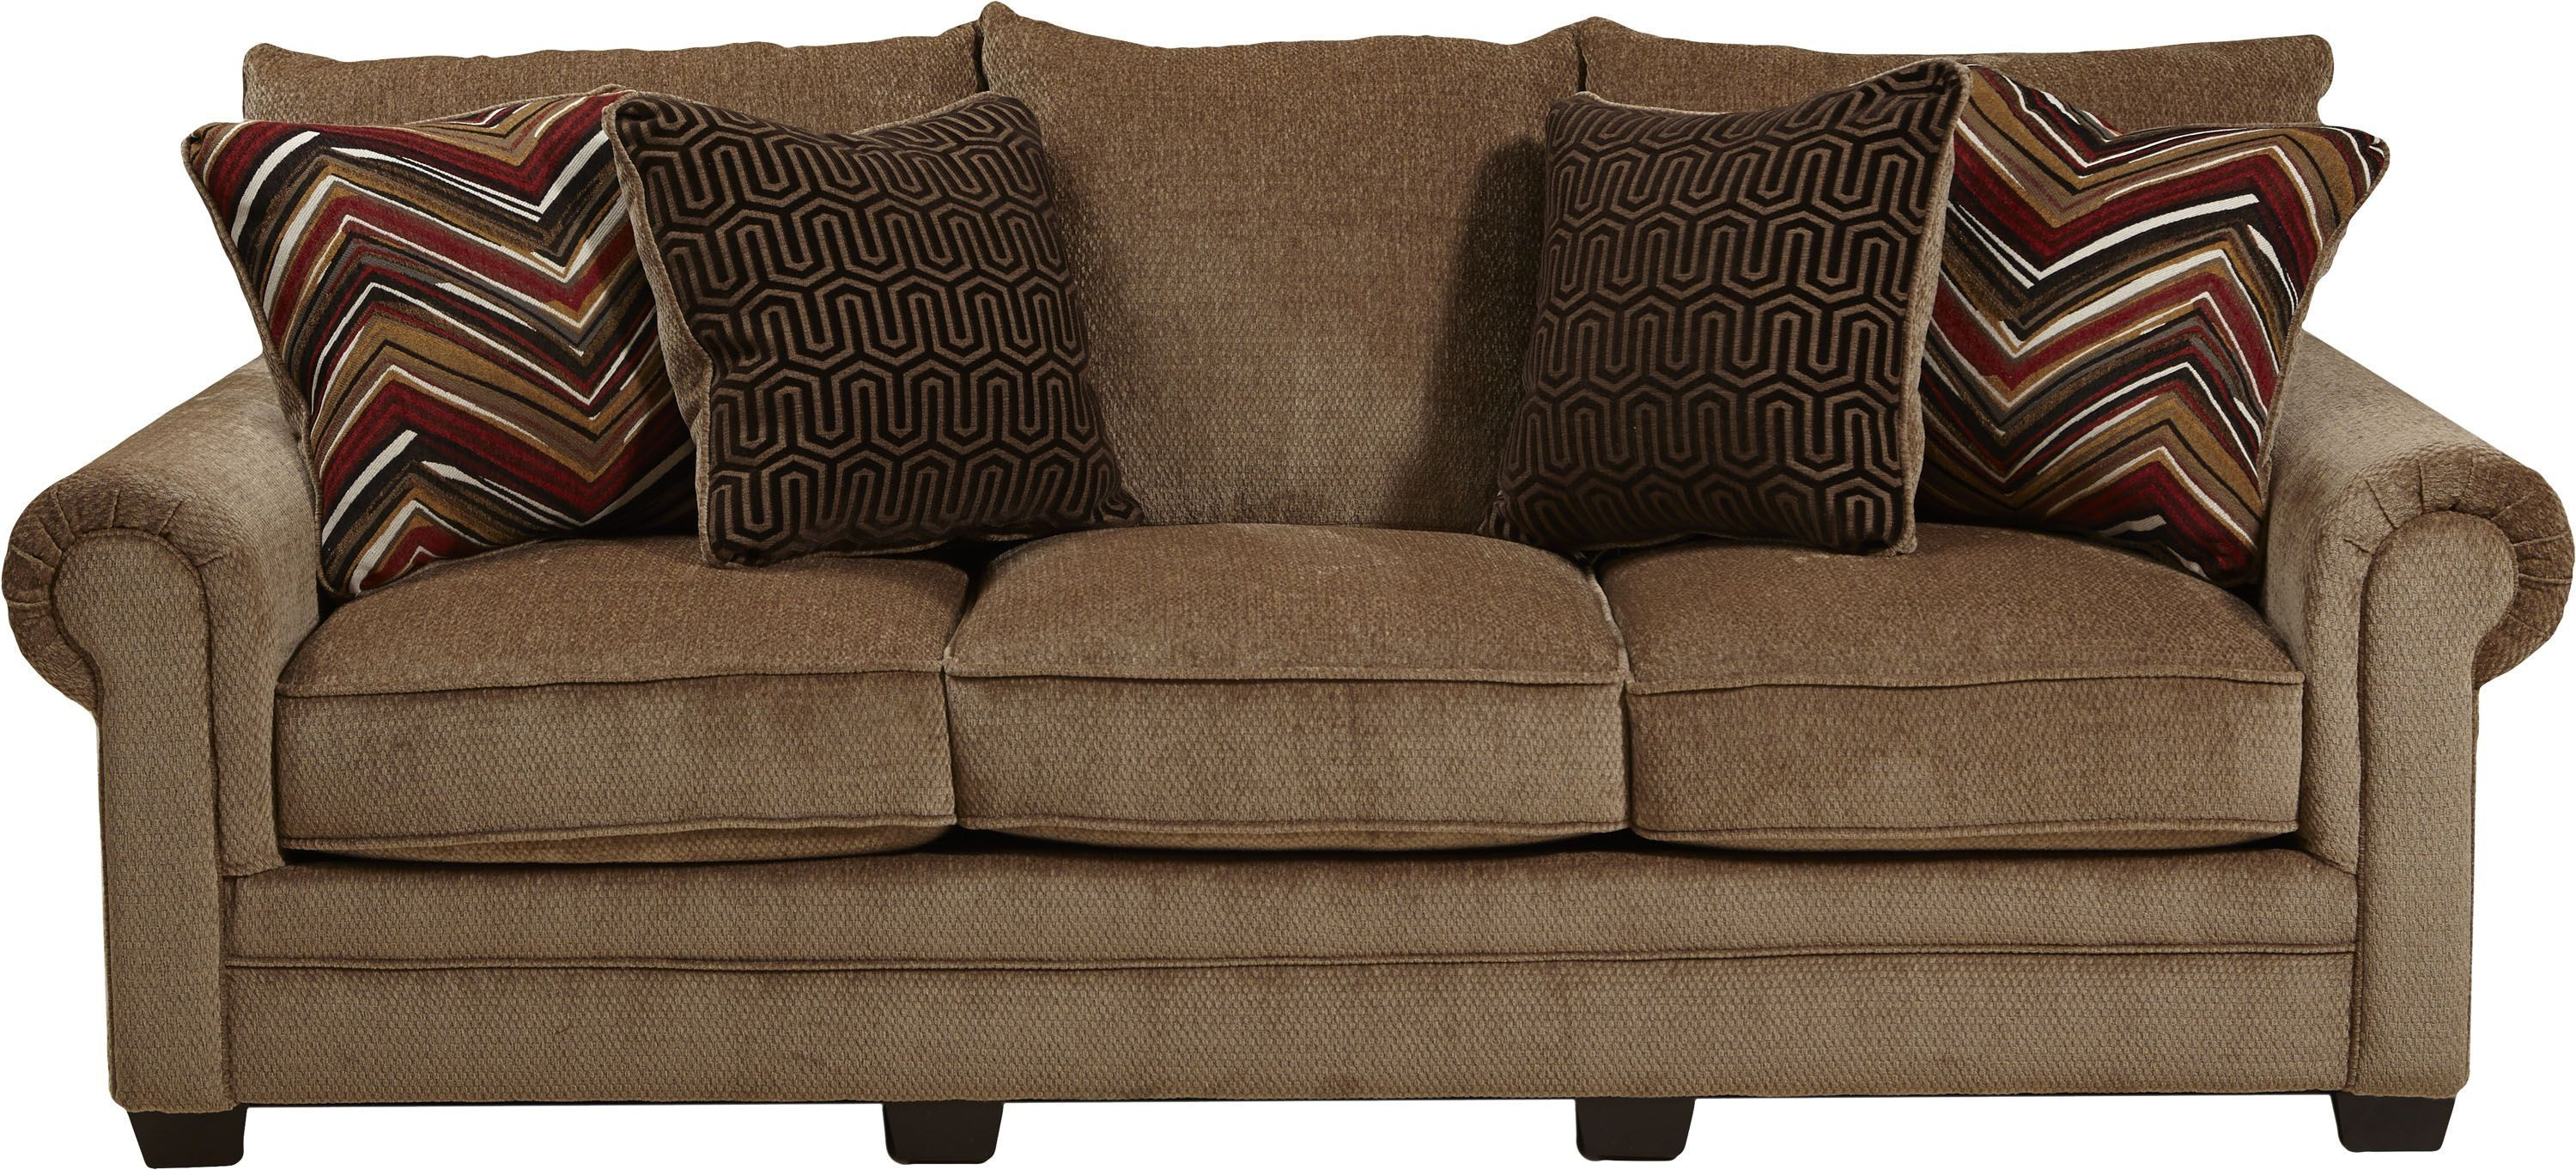 Anniston saddle sofa from jackson 434203000000000000 for Affordable furniture 3 piece sectional in wyoming saddle